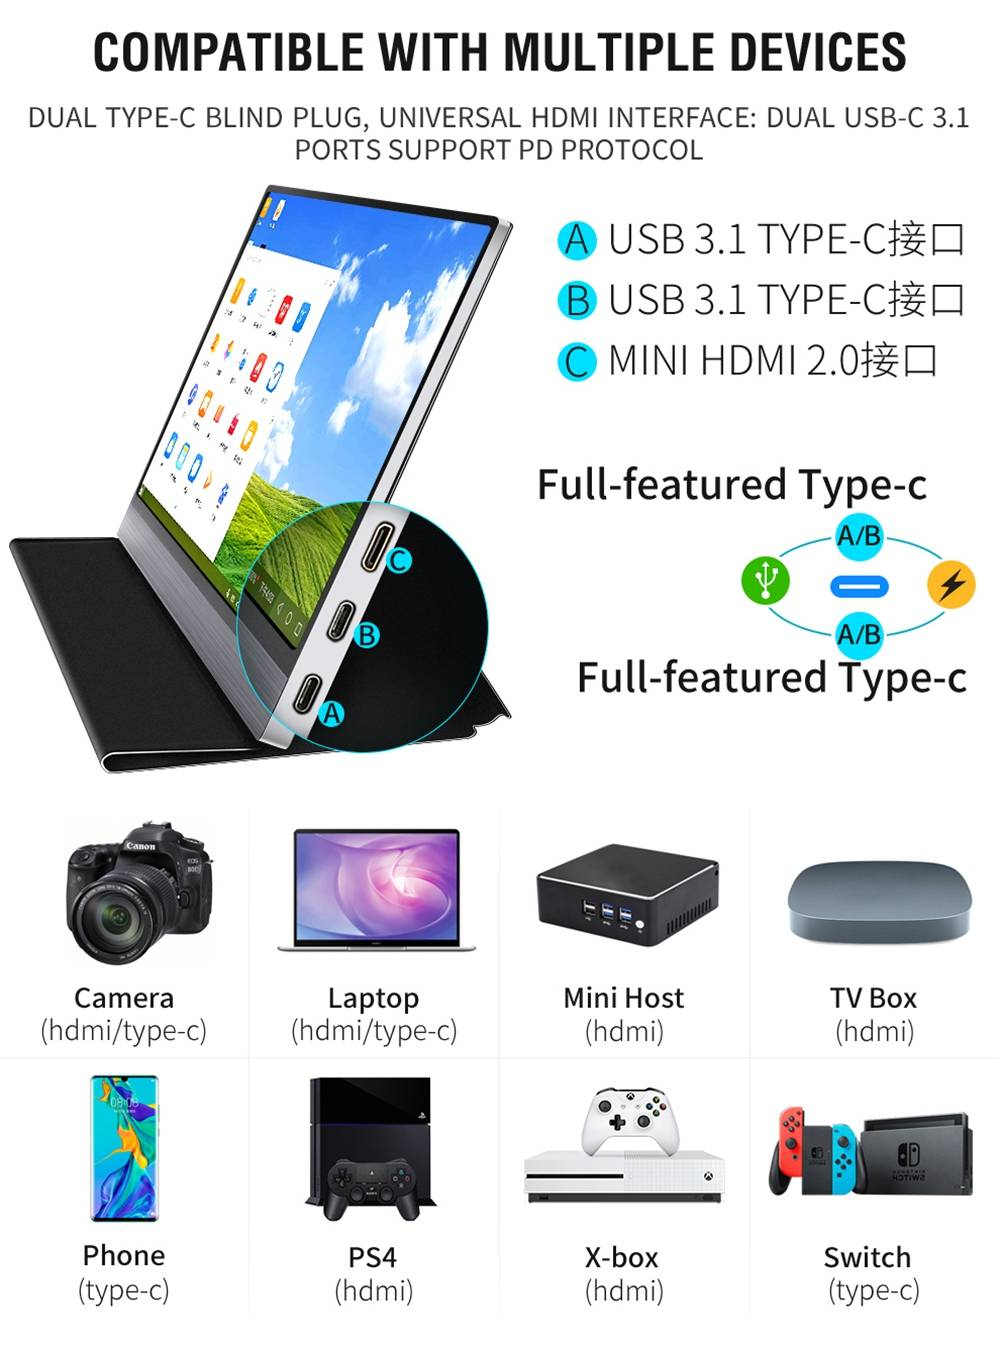 AOSIMAN ASM-156FC Portable Monitor 15.6 Inch IPS HDR Touch Screen 3840*2160 Resolution Full Metal Body Type-C+Mini HDMI Dual Port - Black